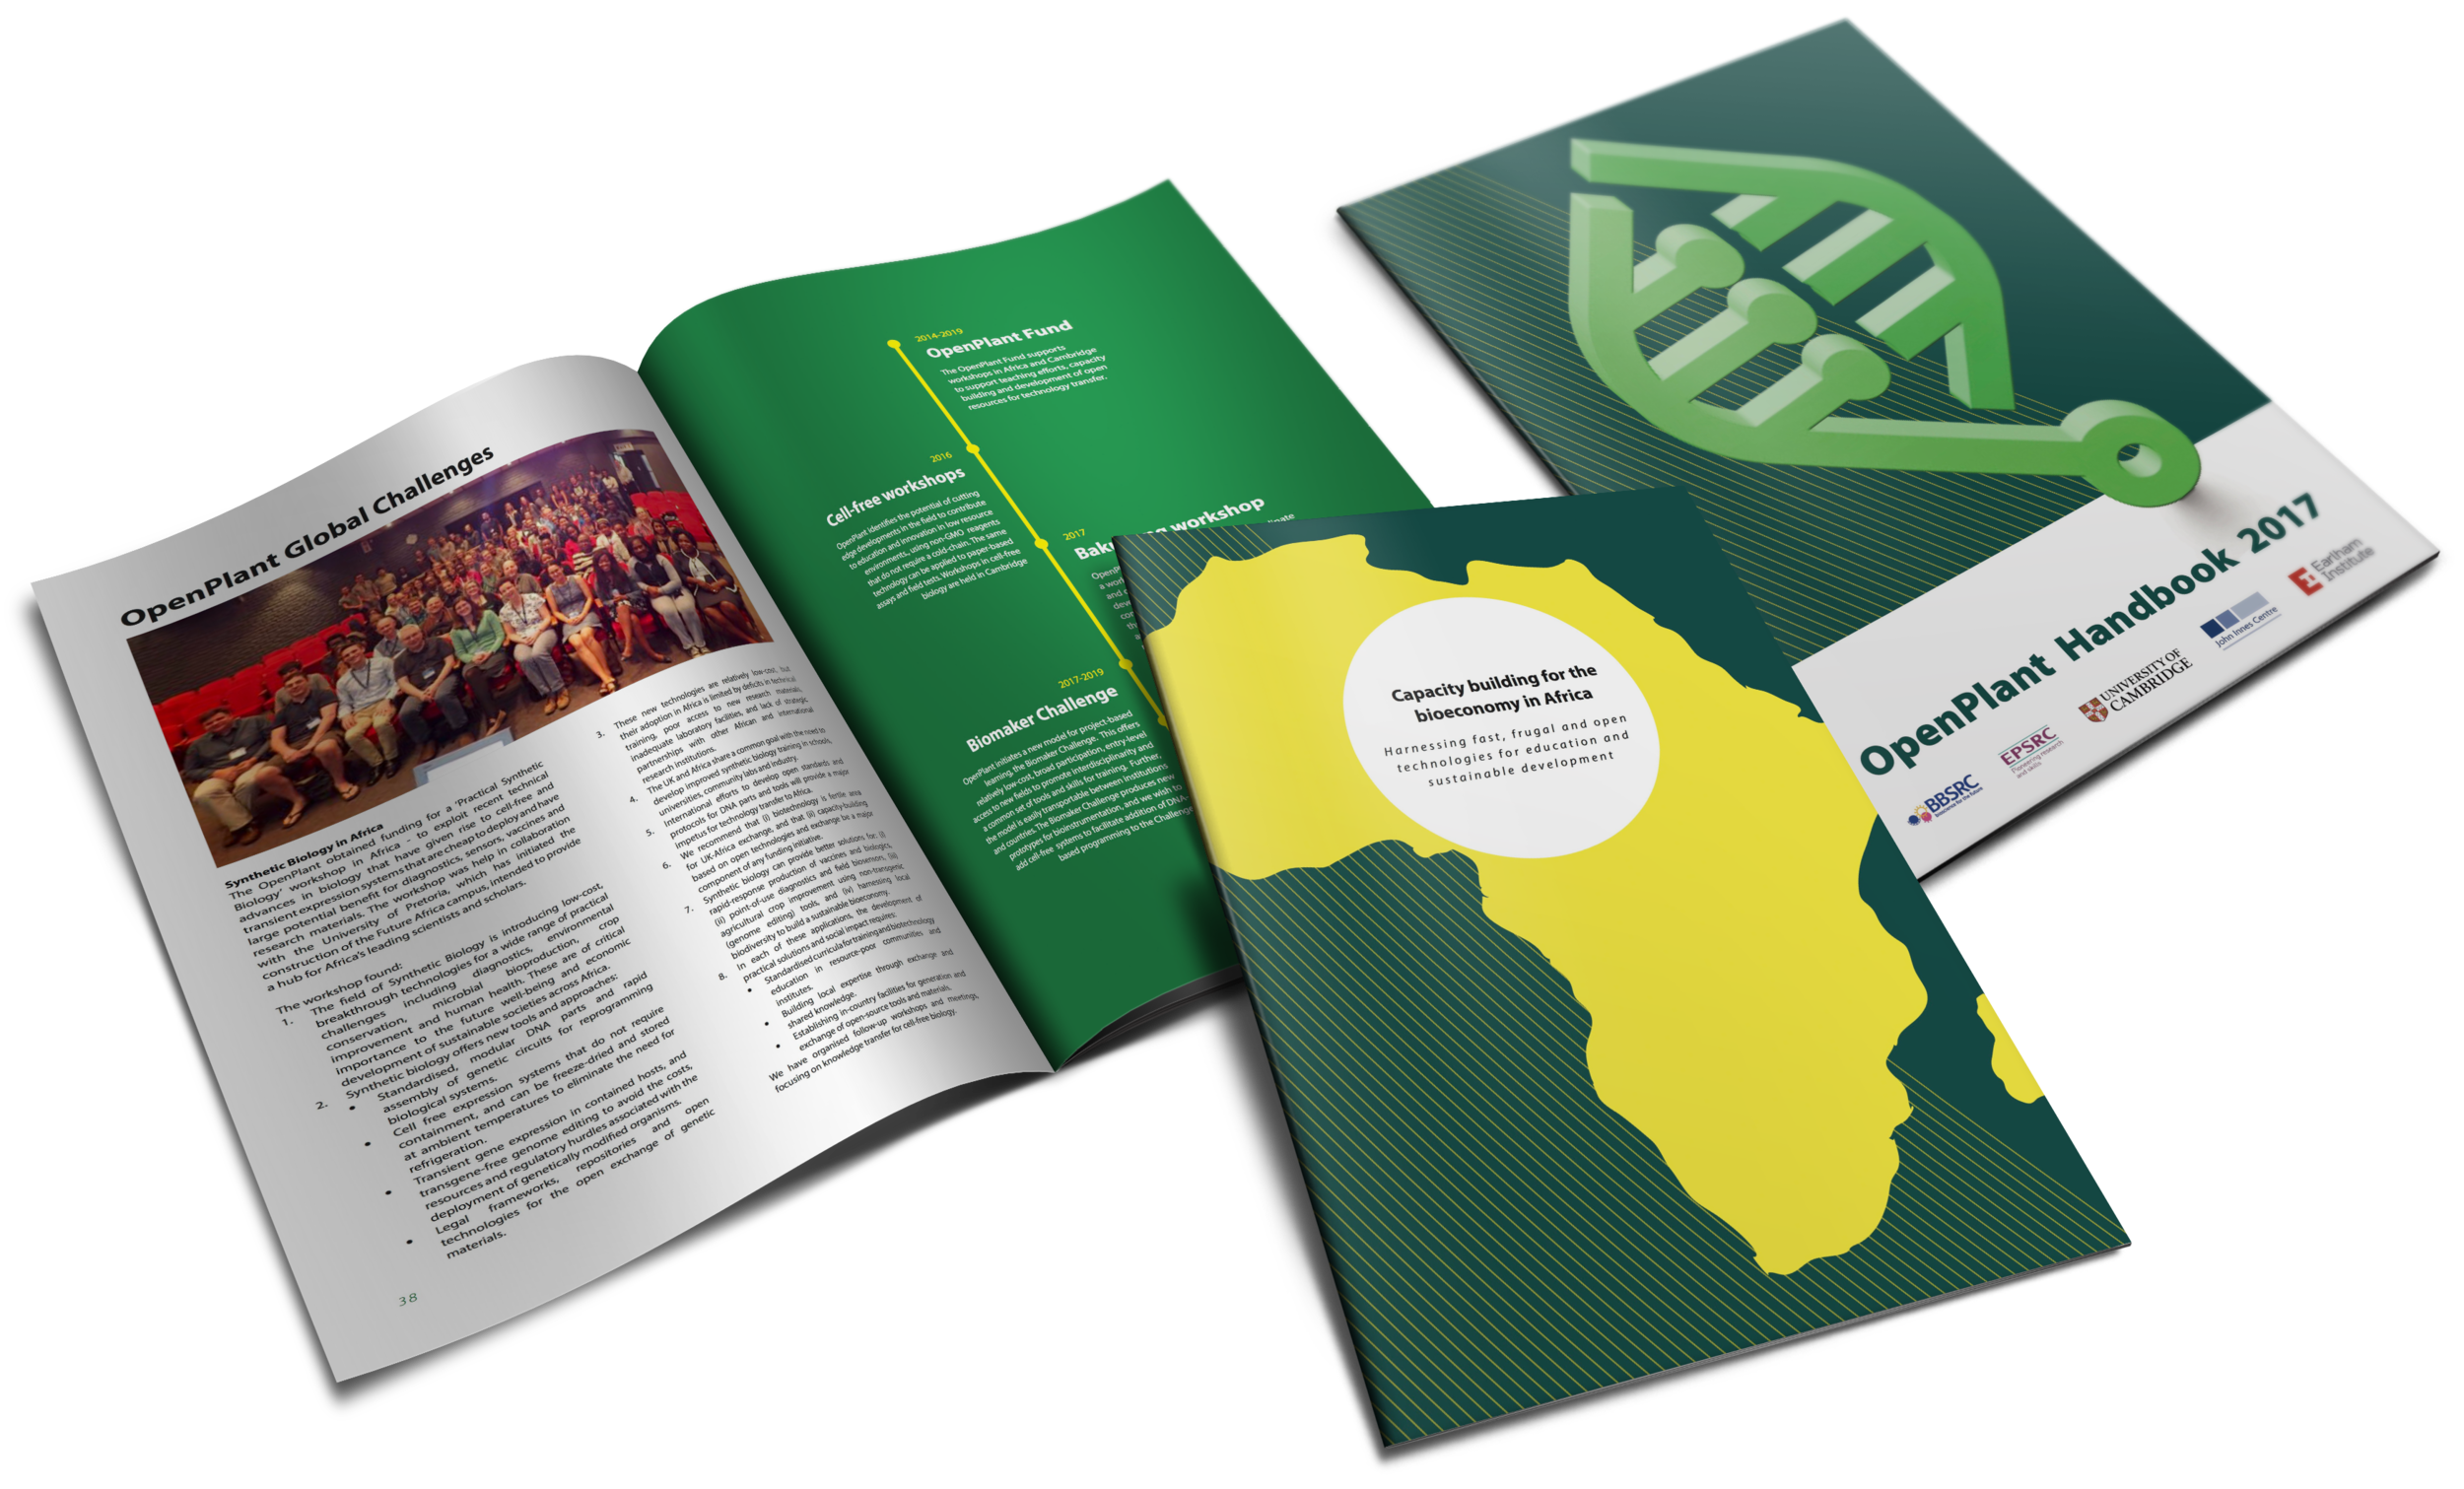 Download Bakubung report   (3.9MB, 26 pages)    Download OpenPlant Handbook   (24MB, 56 pages)